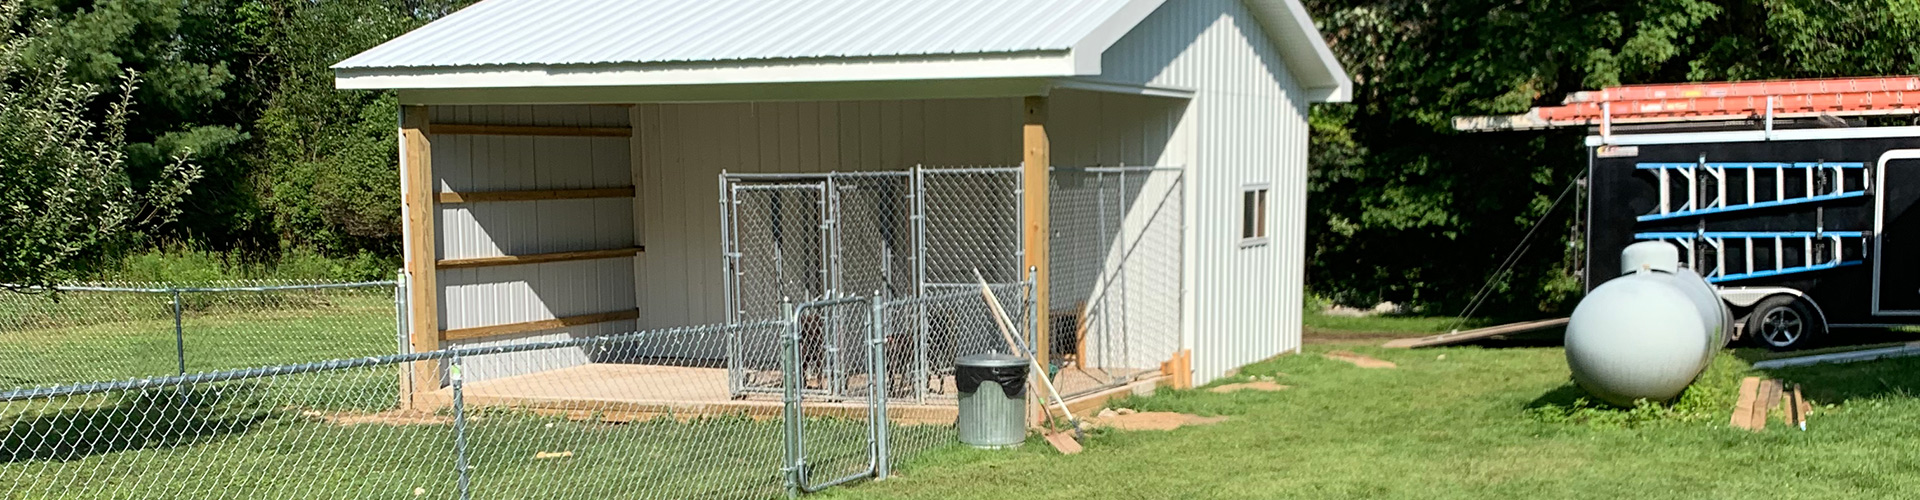 Dog Kennel - Howell Banner Image One